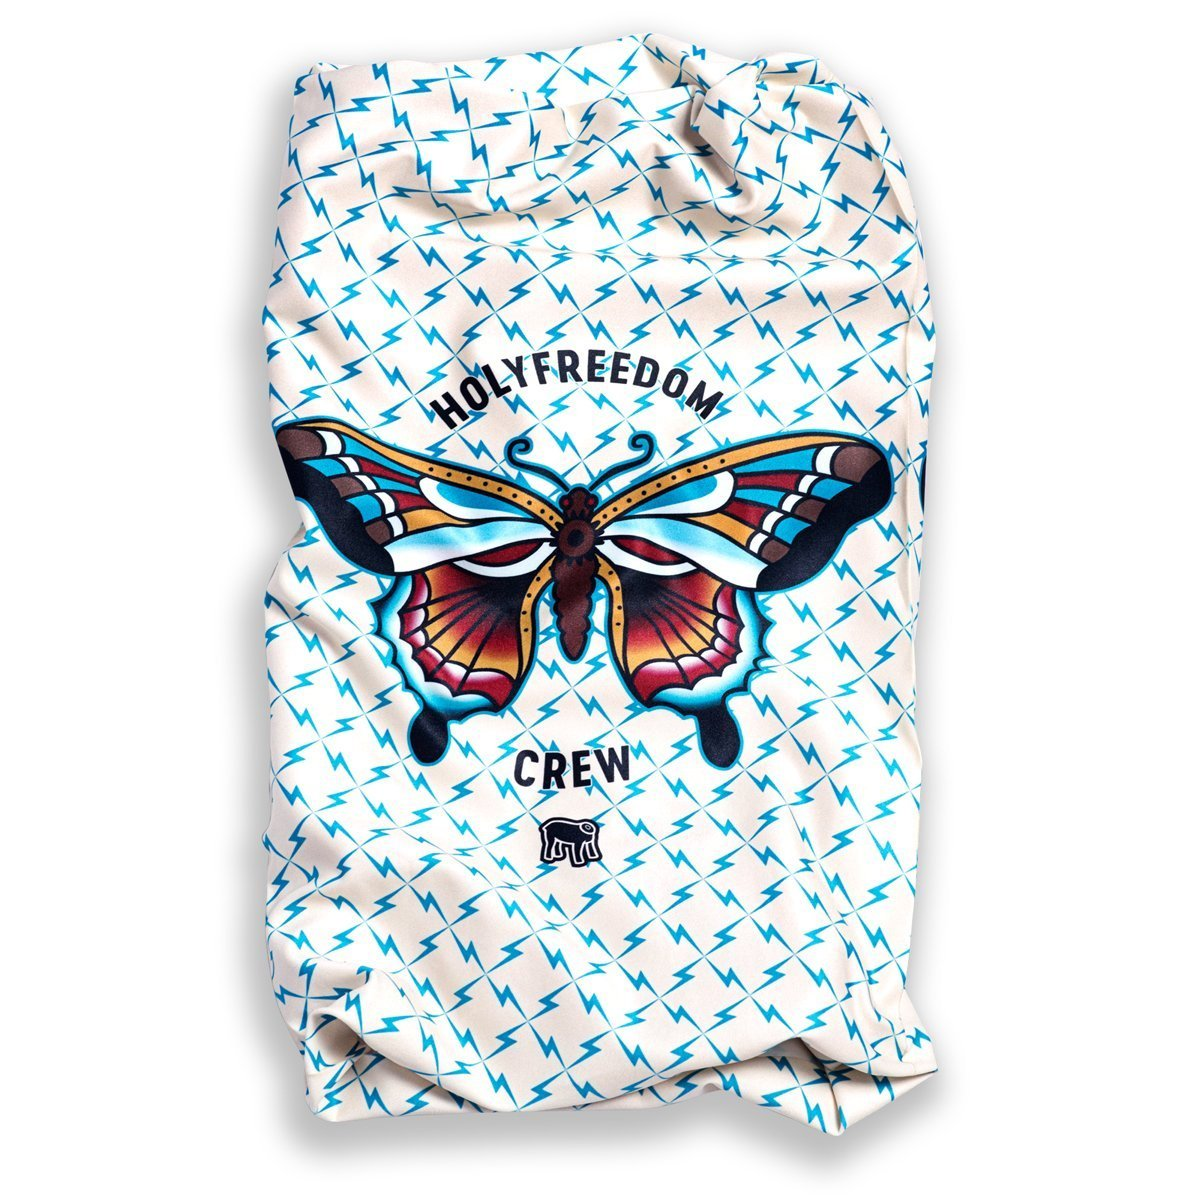 Holy Freedom - Holy Freedom Butterfly Stretch Bandana Tube - Bandana's and Tubes - Salt Flats Clothing